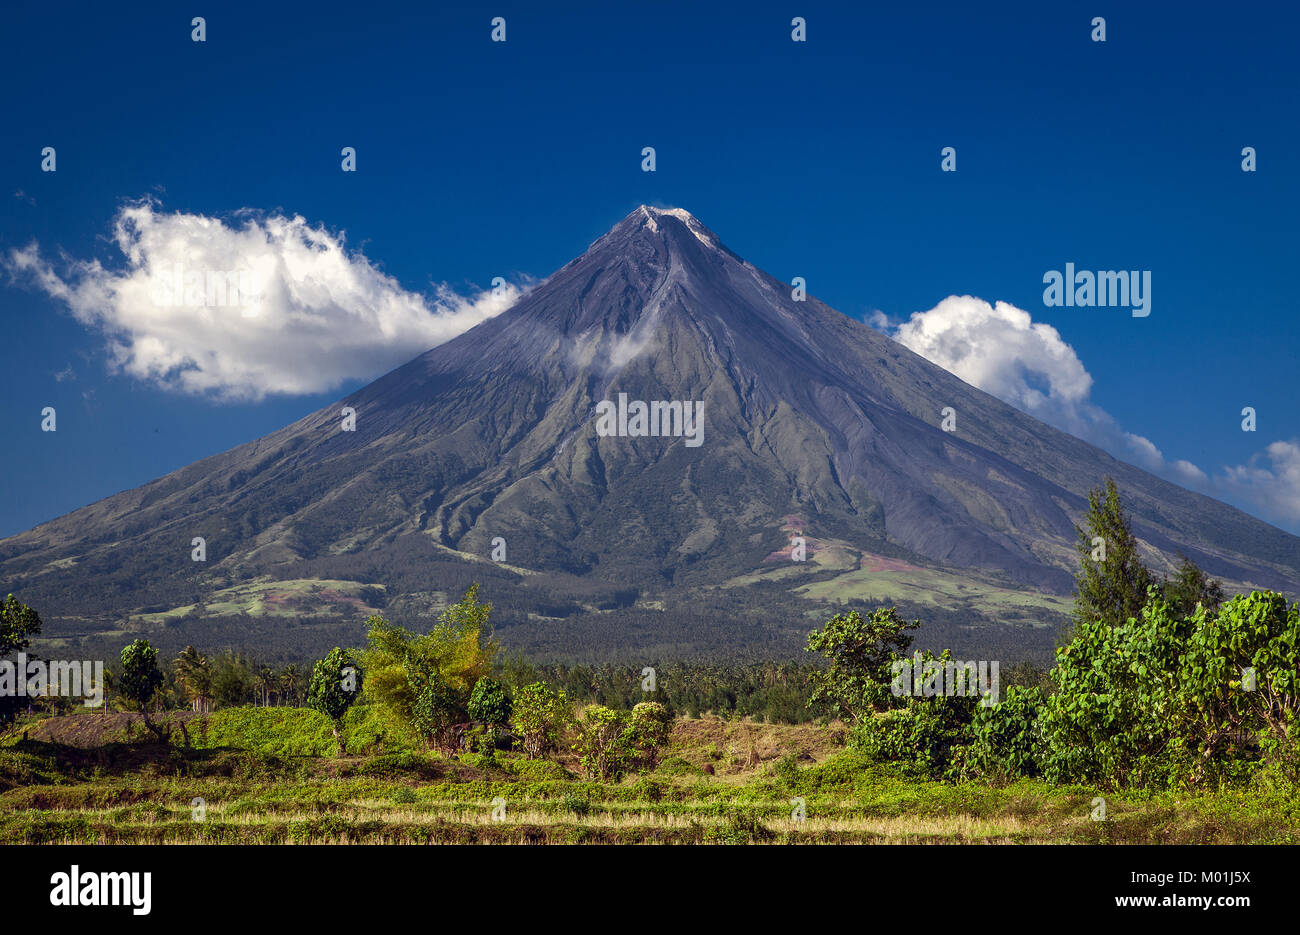 Mount Mayan is a stratovolcano in the Province of Albay, Bicol Region of Luzon Island in the PHilippines. It's - Stock Image